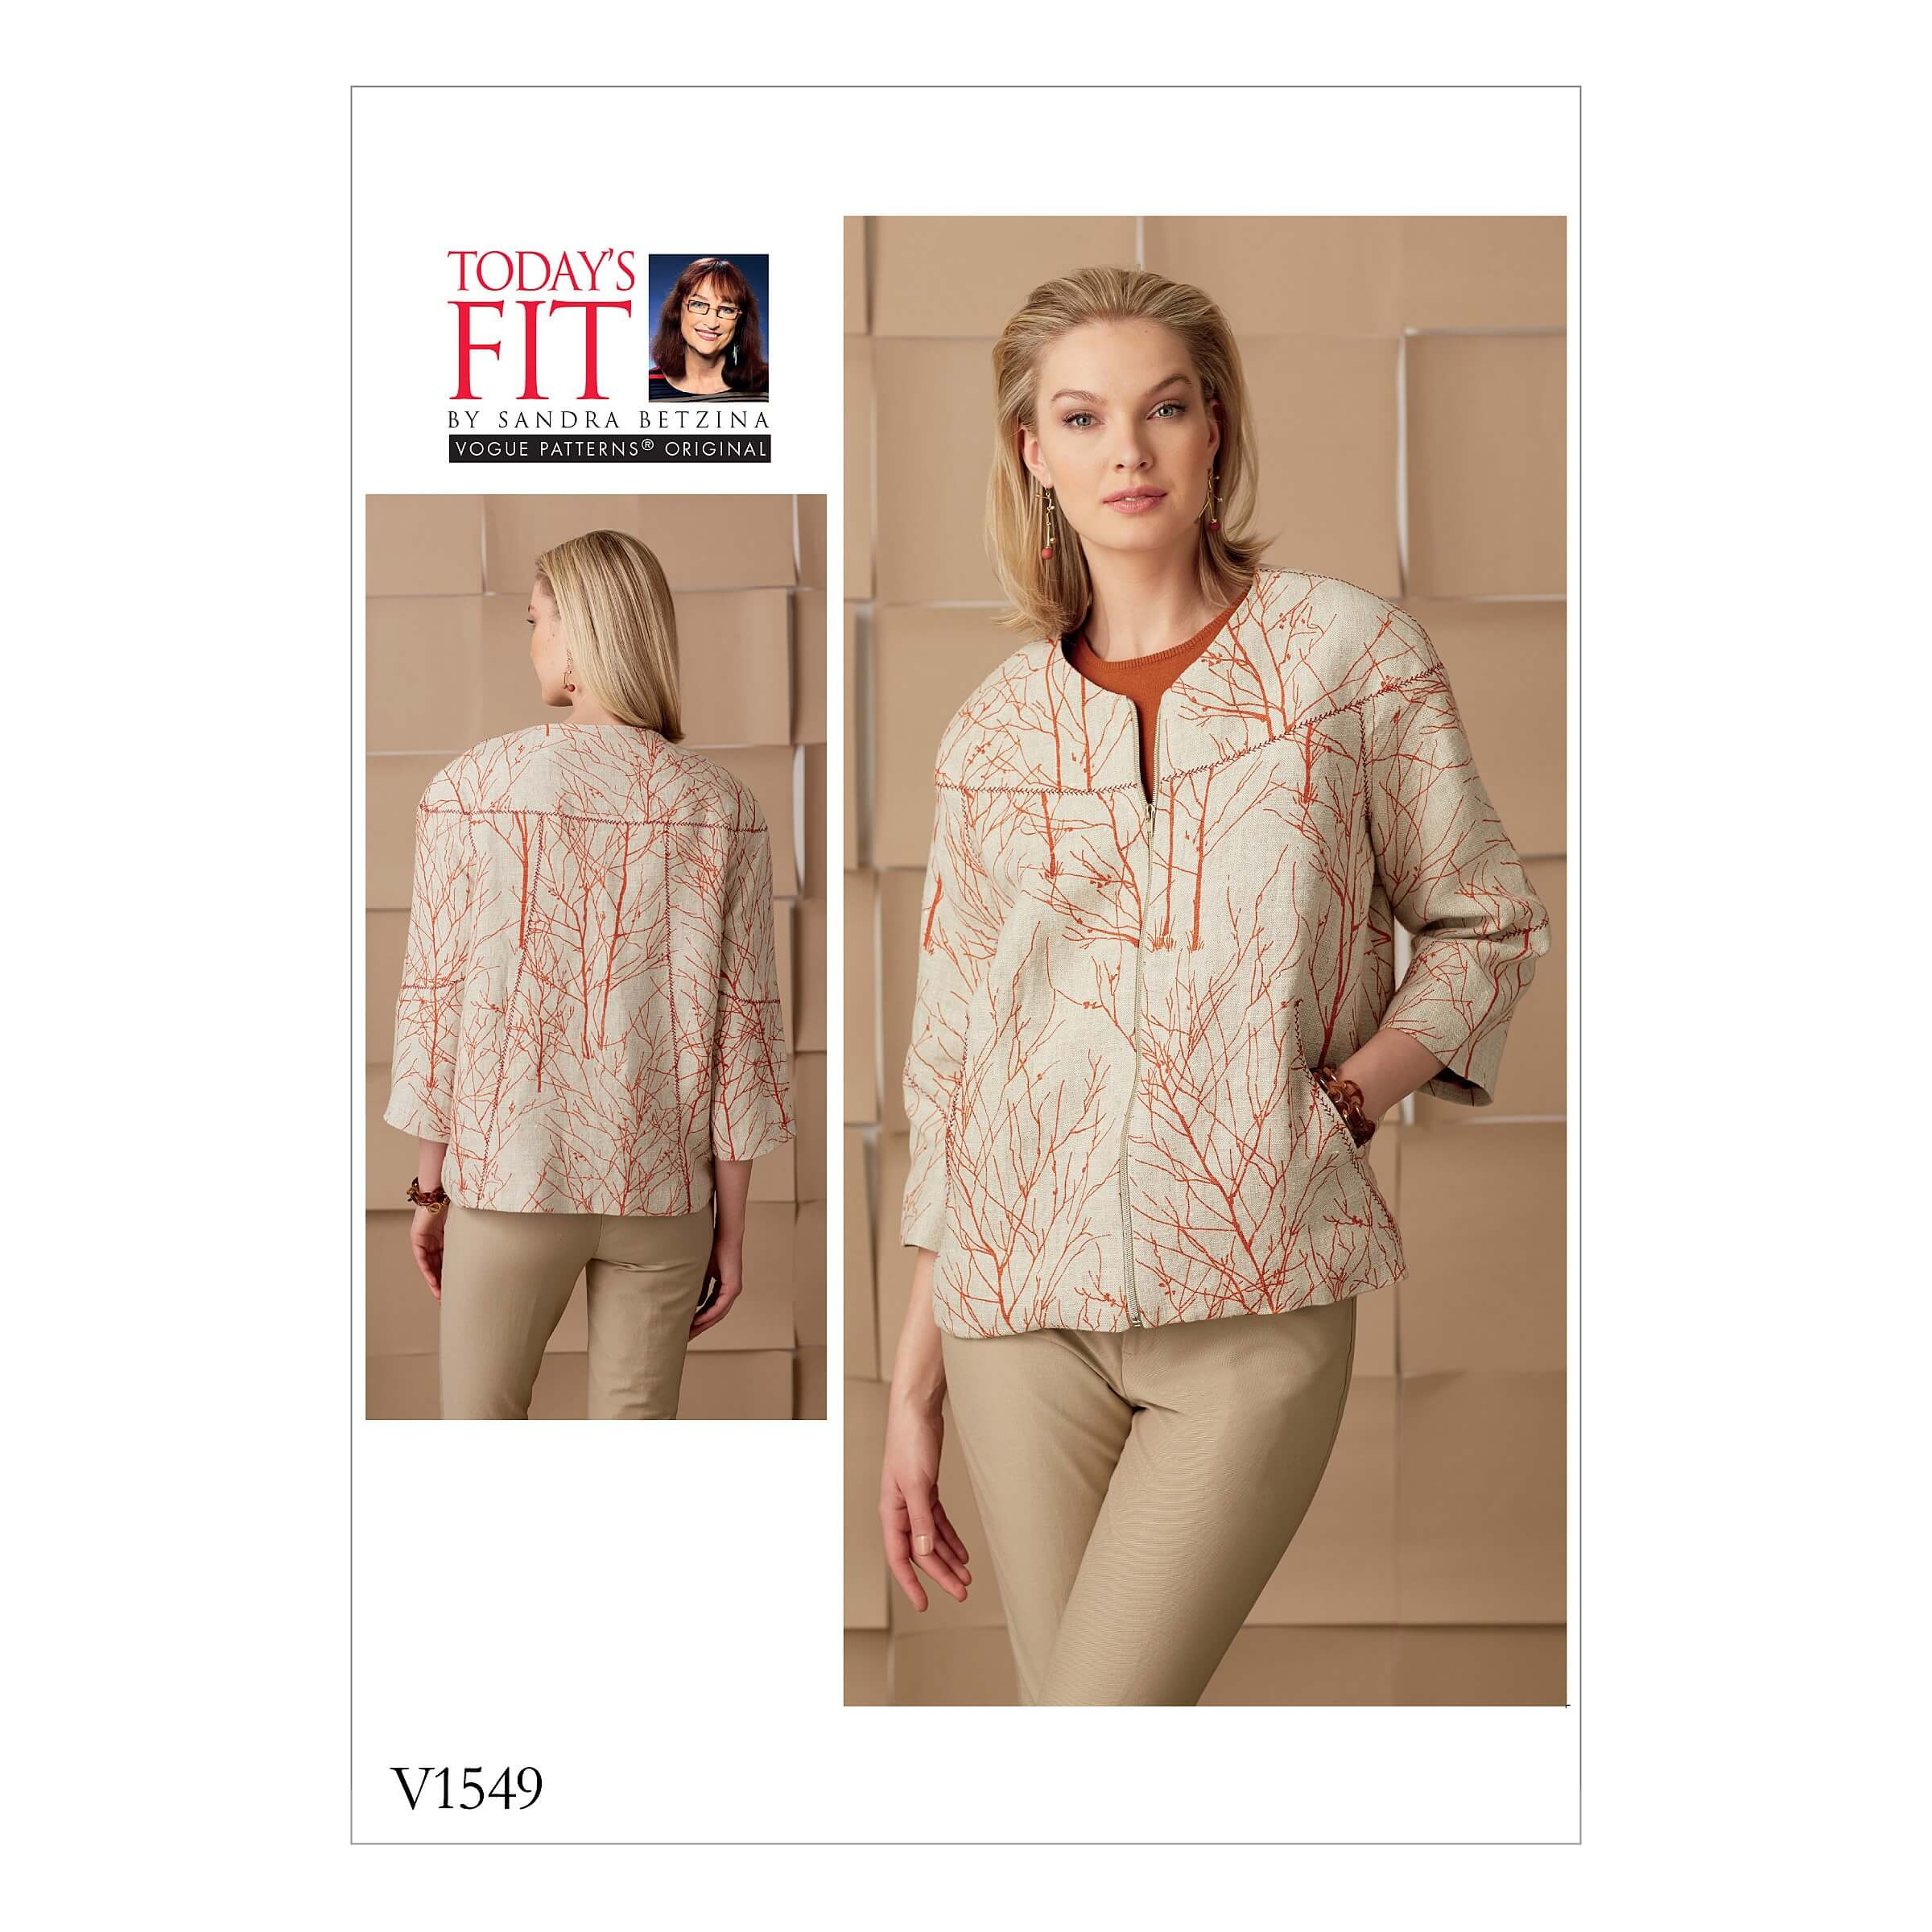 Vogue Sewing Pattern V1549 Women's Zip Jacket with Seam Details